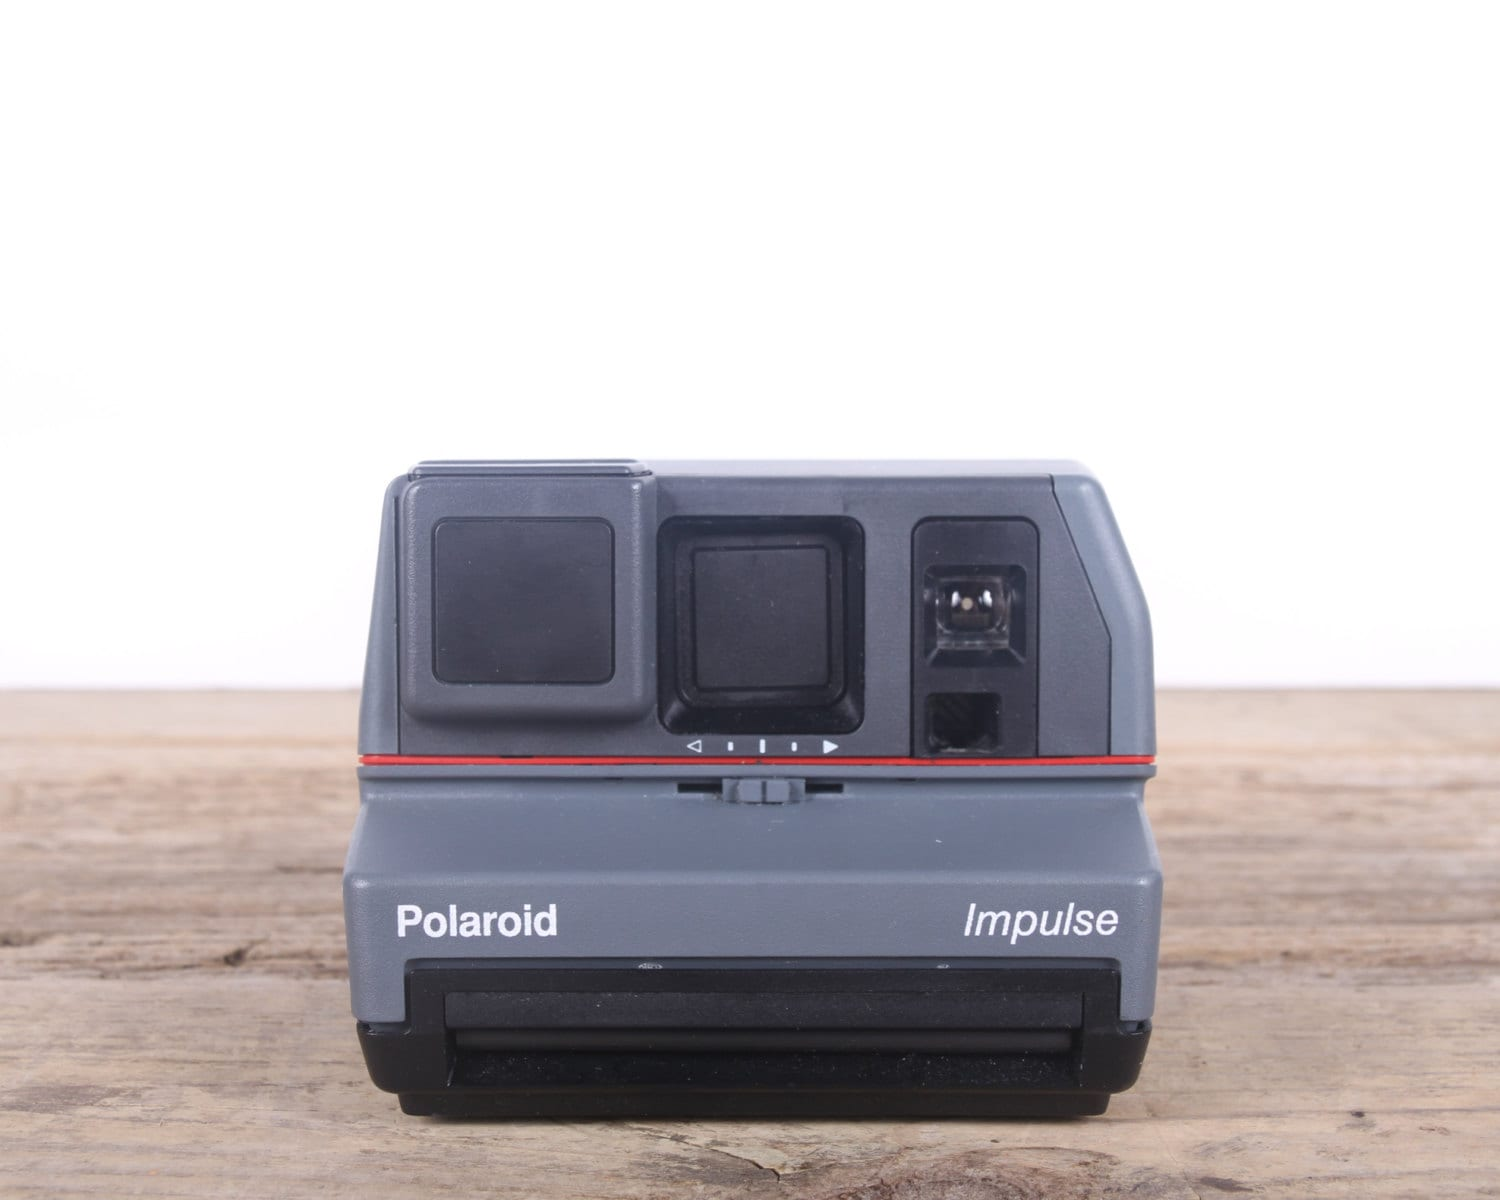 Polaroid Impulse Camera   Polaroid Camera   Old Polaroid Camera   Vintage  Polaroid   Retro   Old Camera   Antique Polaroid Land Camera c3eab6dbc0df